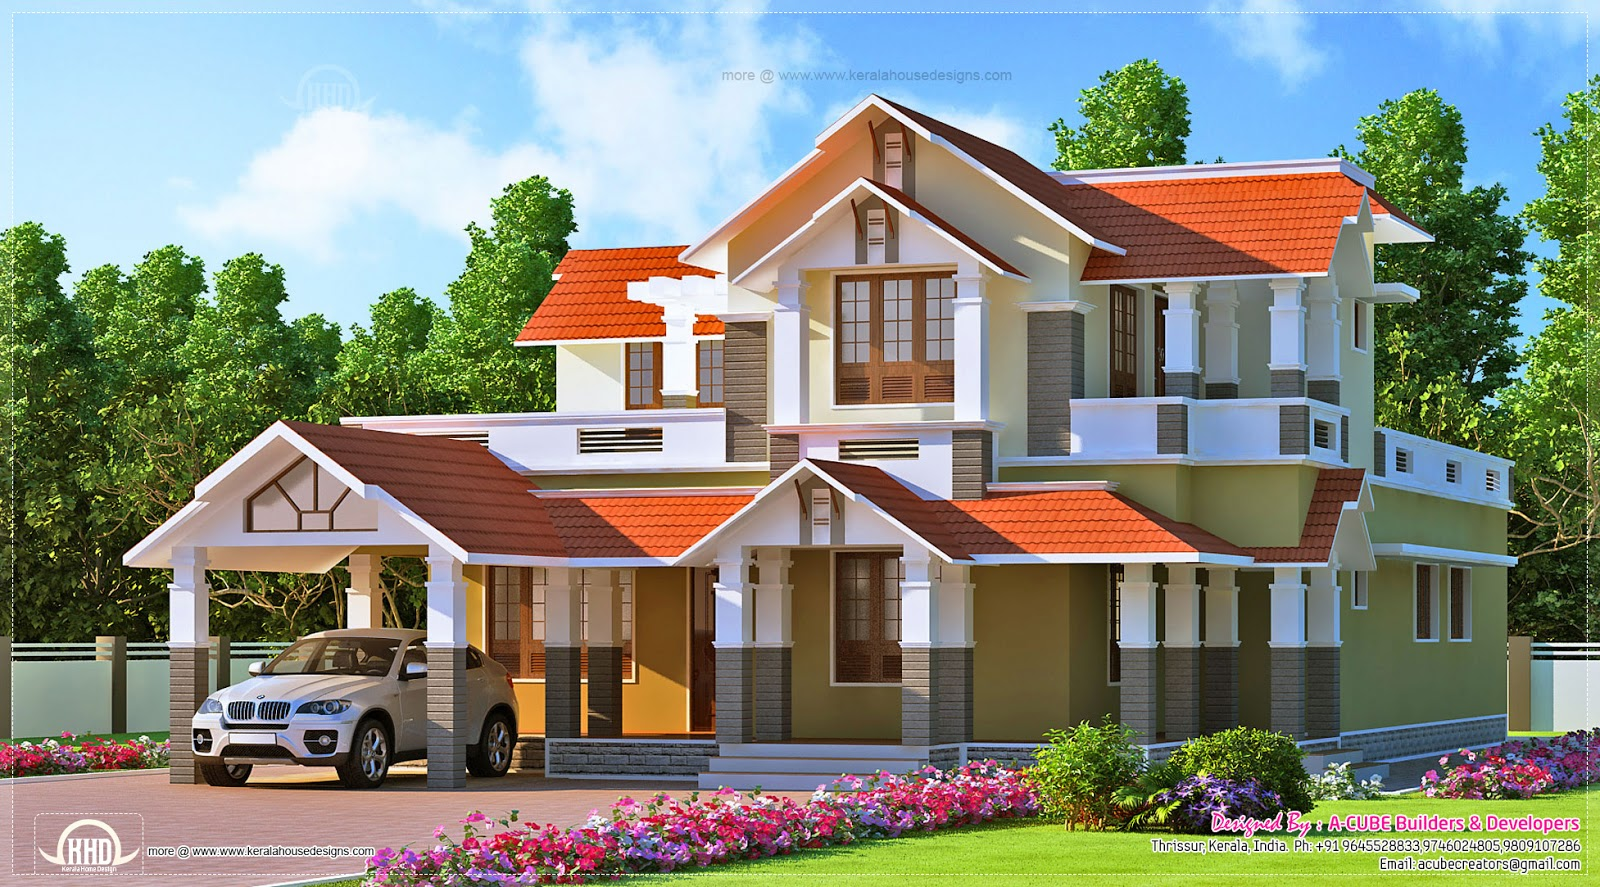 Eco friendly houses kerala style dream home design Dream designer homes